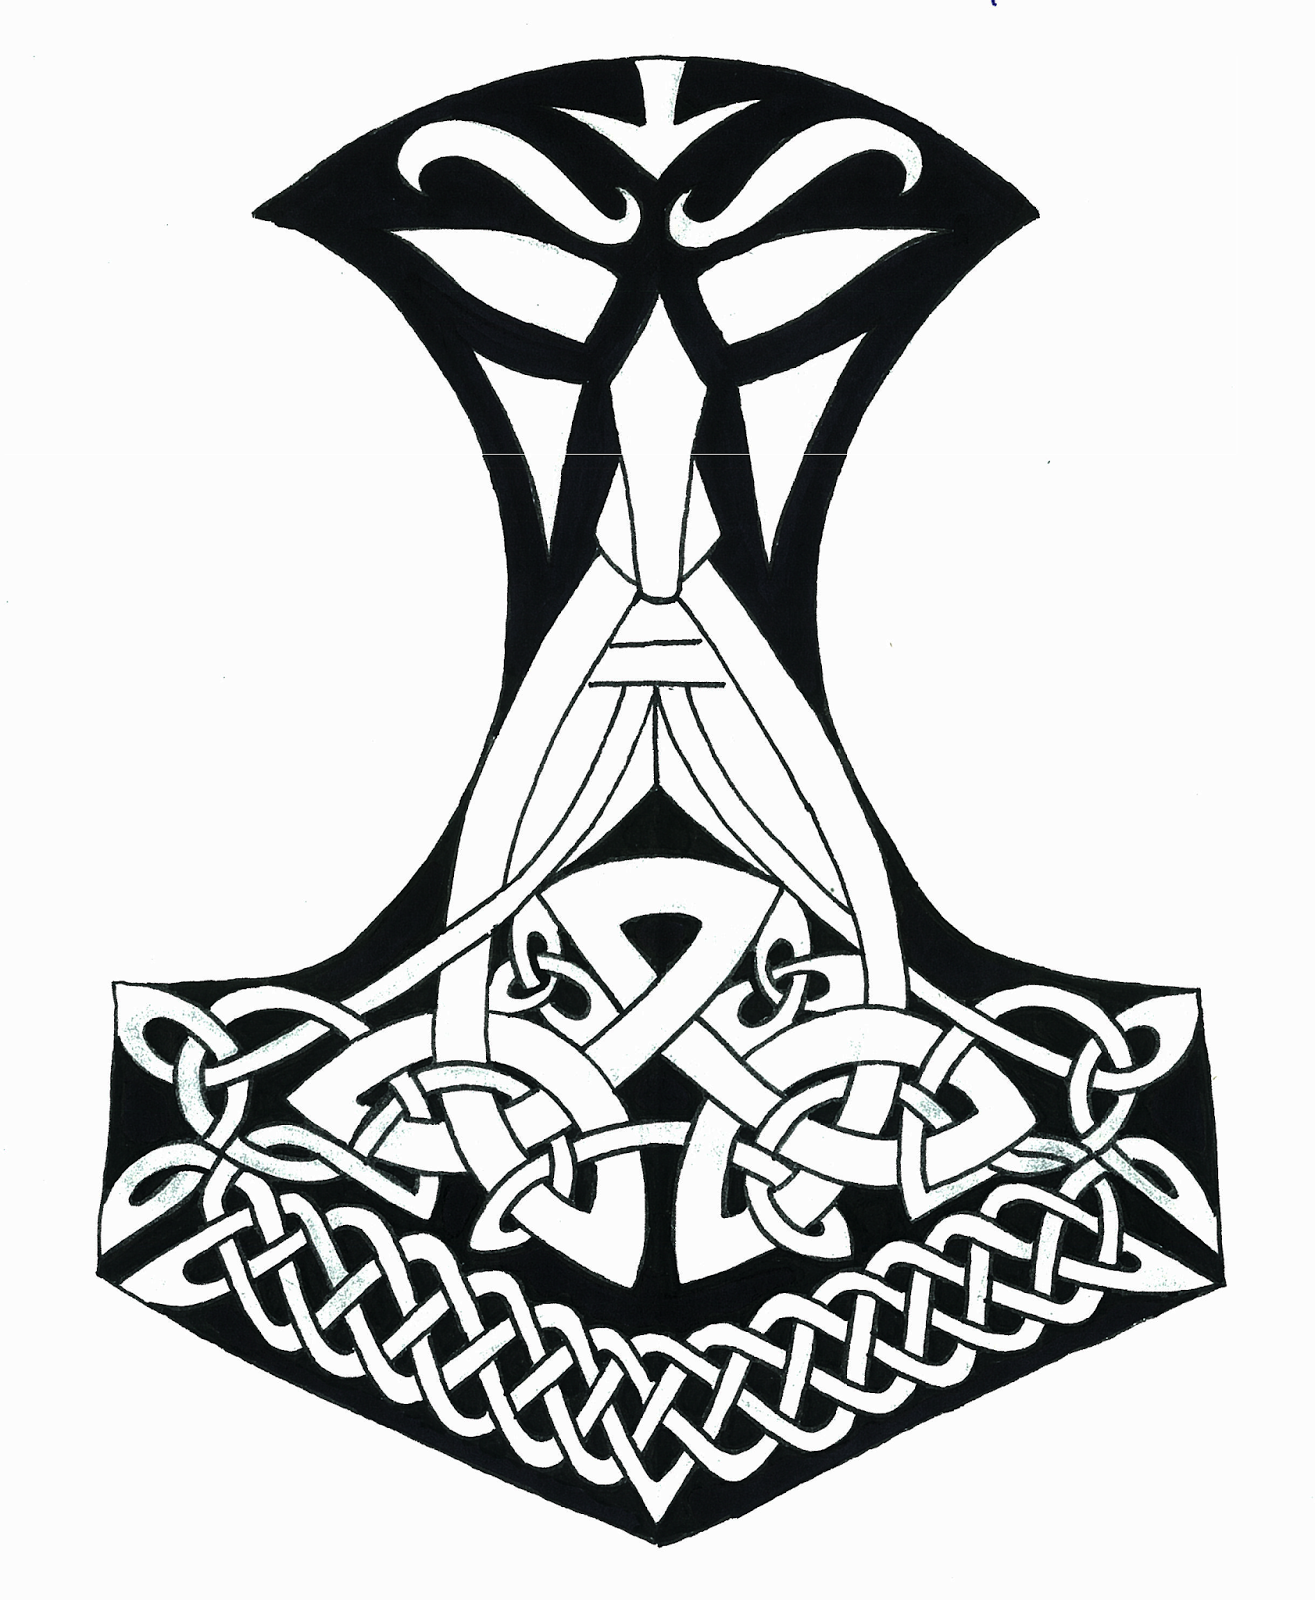 norse symbols and meanings Ancient Norse Warrior Symbols